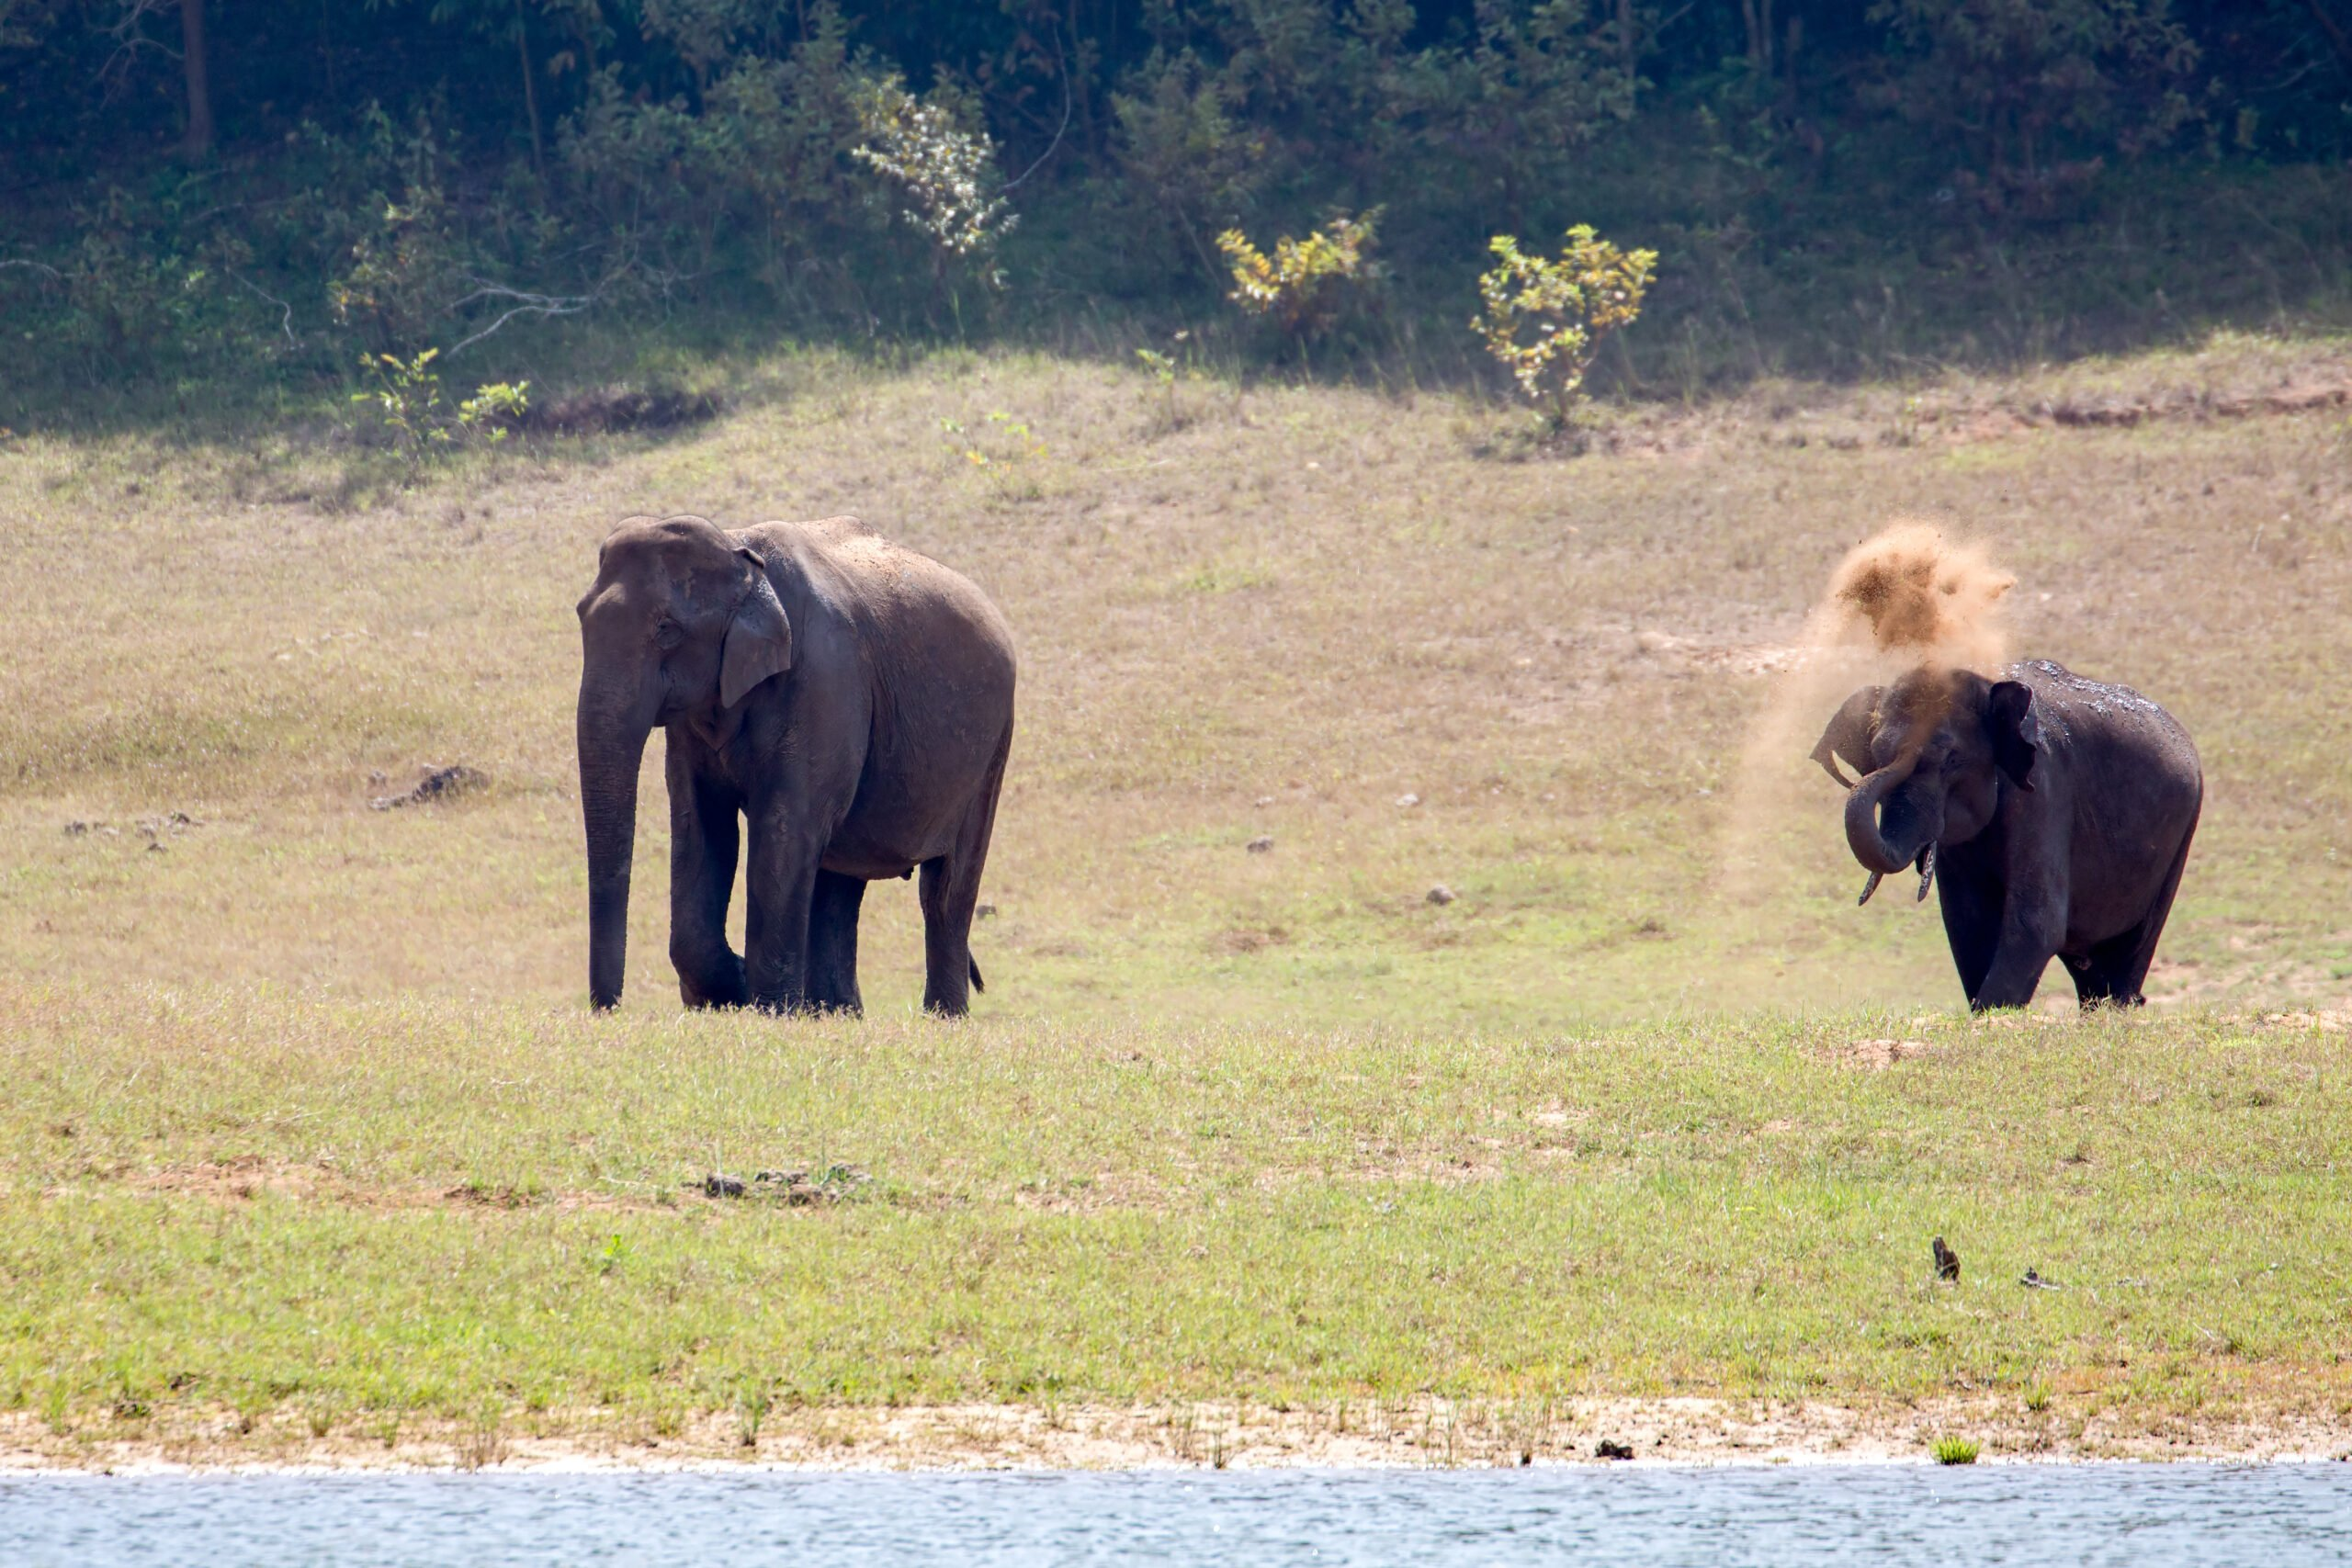 Amazing Wildlife Experience In Our 3 Day Wildlife And Culture Tour Of Thekkady From Kochi